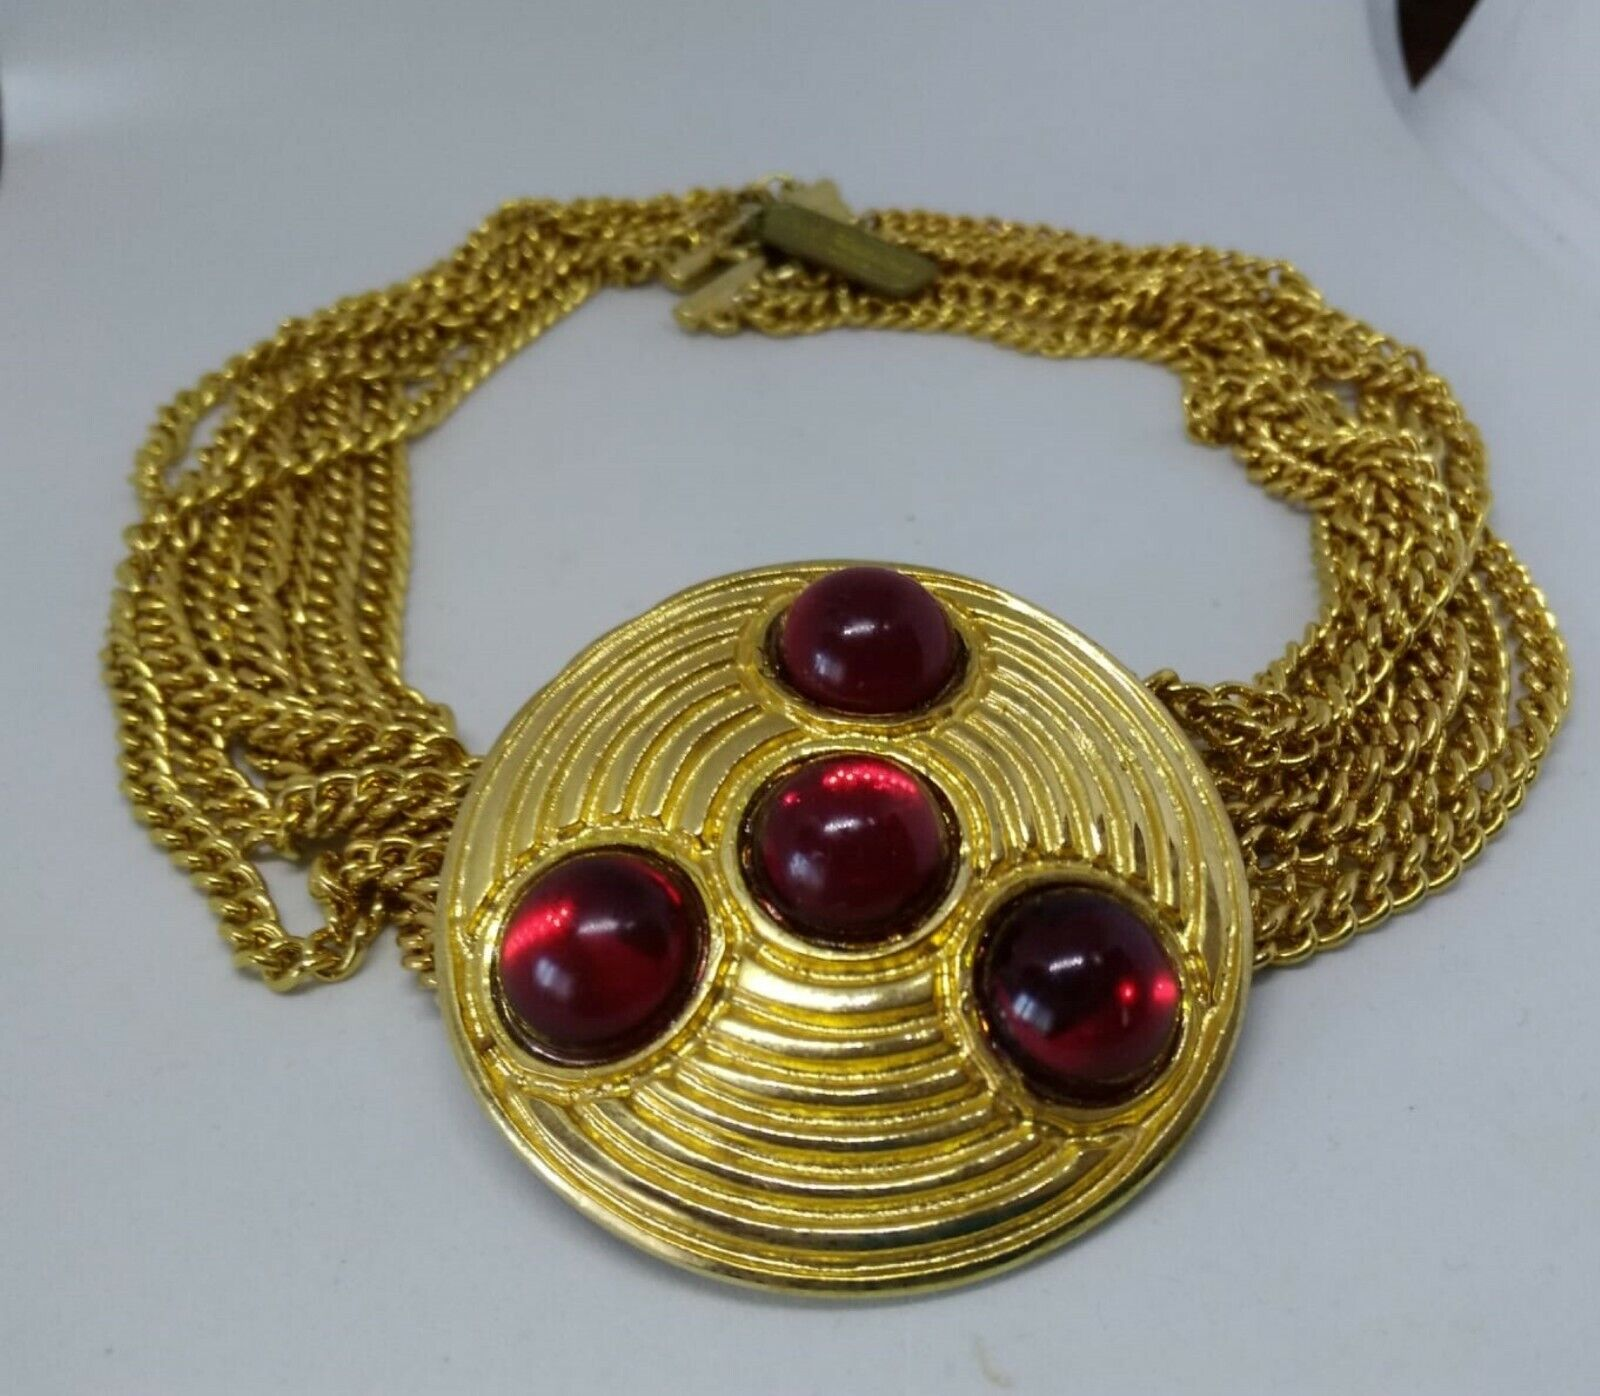 Vintage Design Italian necklace chains and pendant Metal Color Gold and Red-show original title